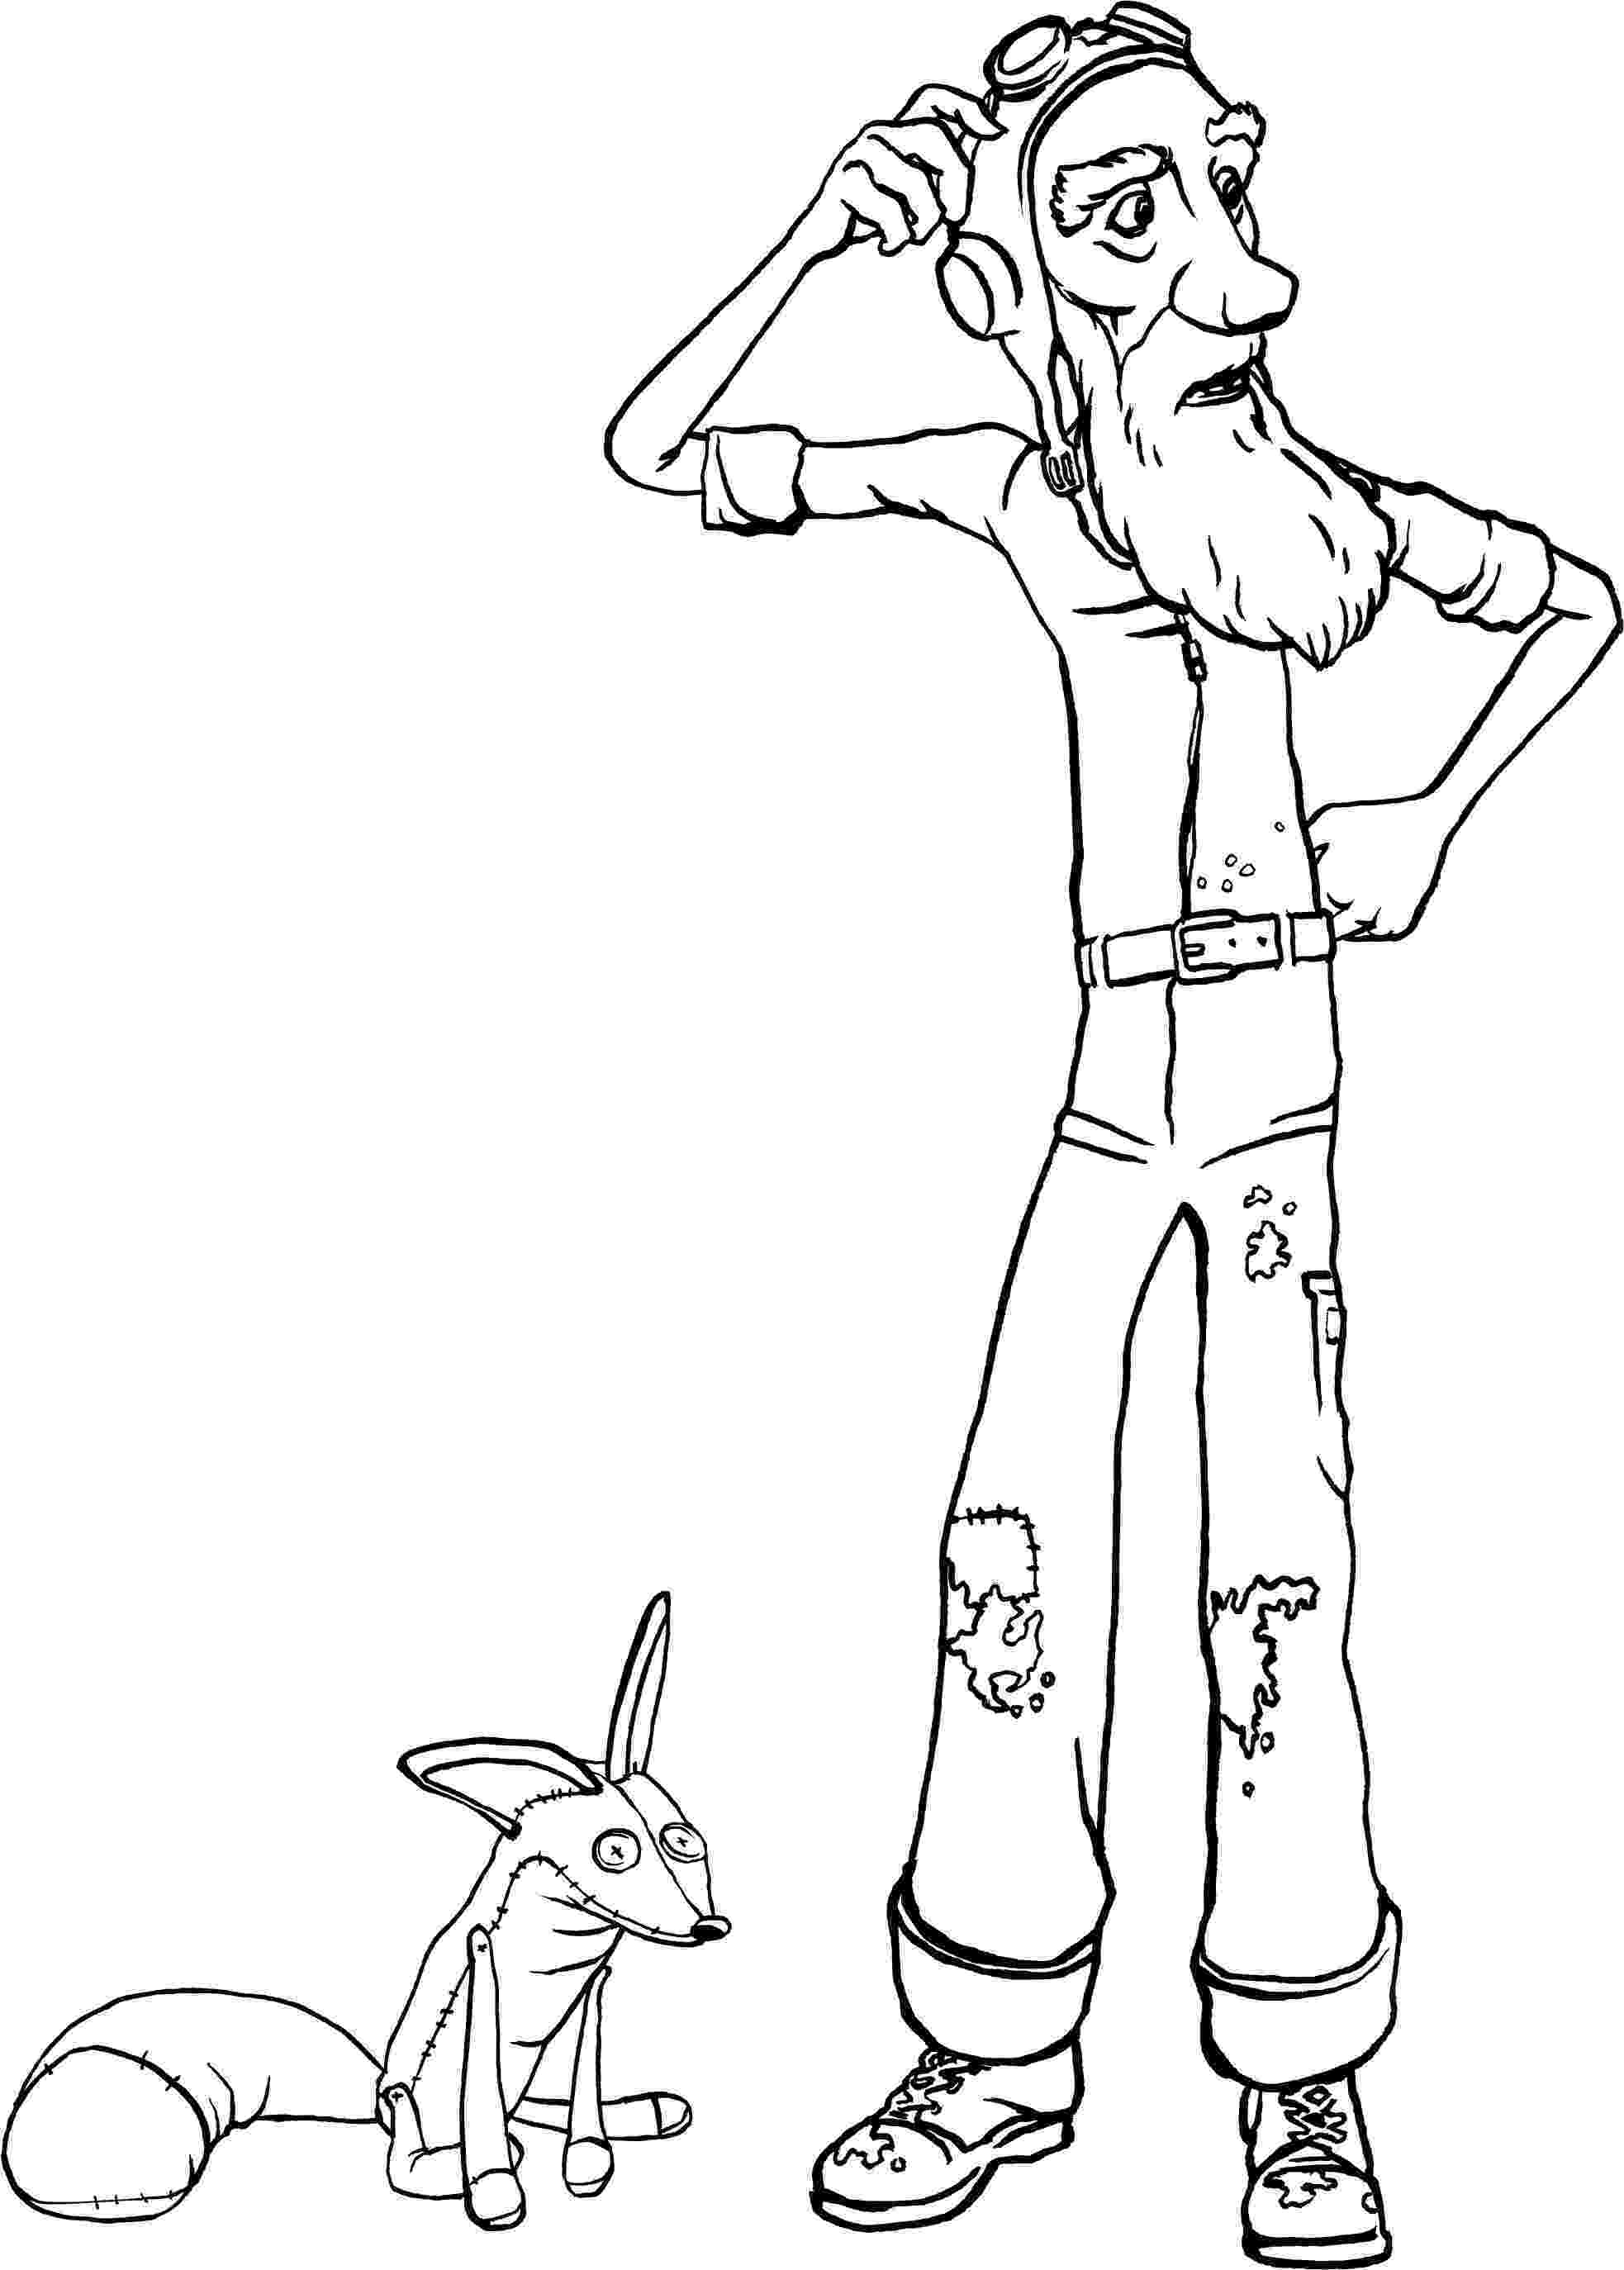 little prince coloring book the little prince befriends the fox coloring page free little prince book coloring